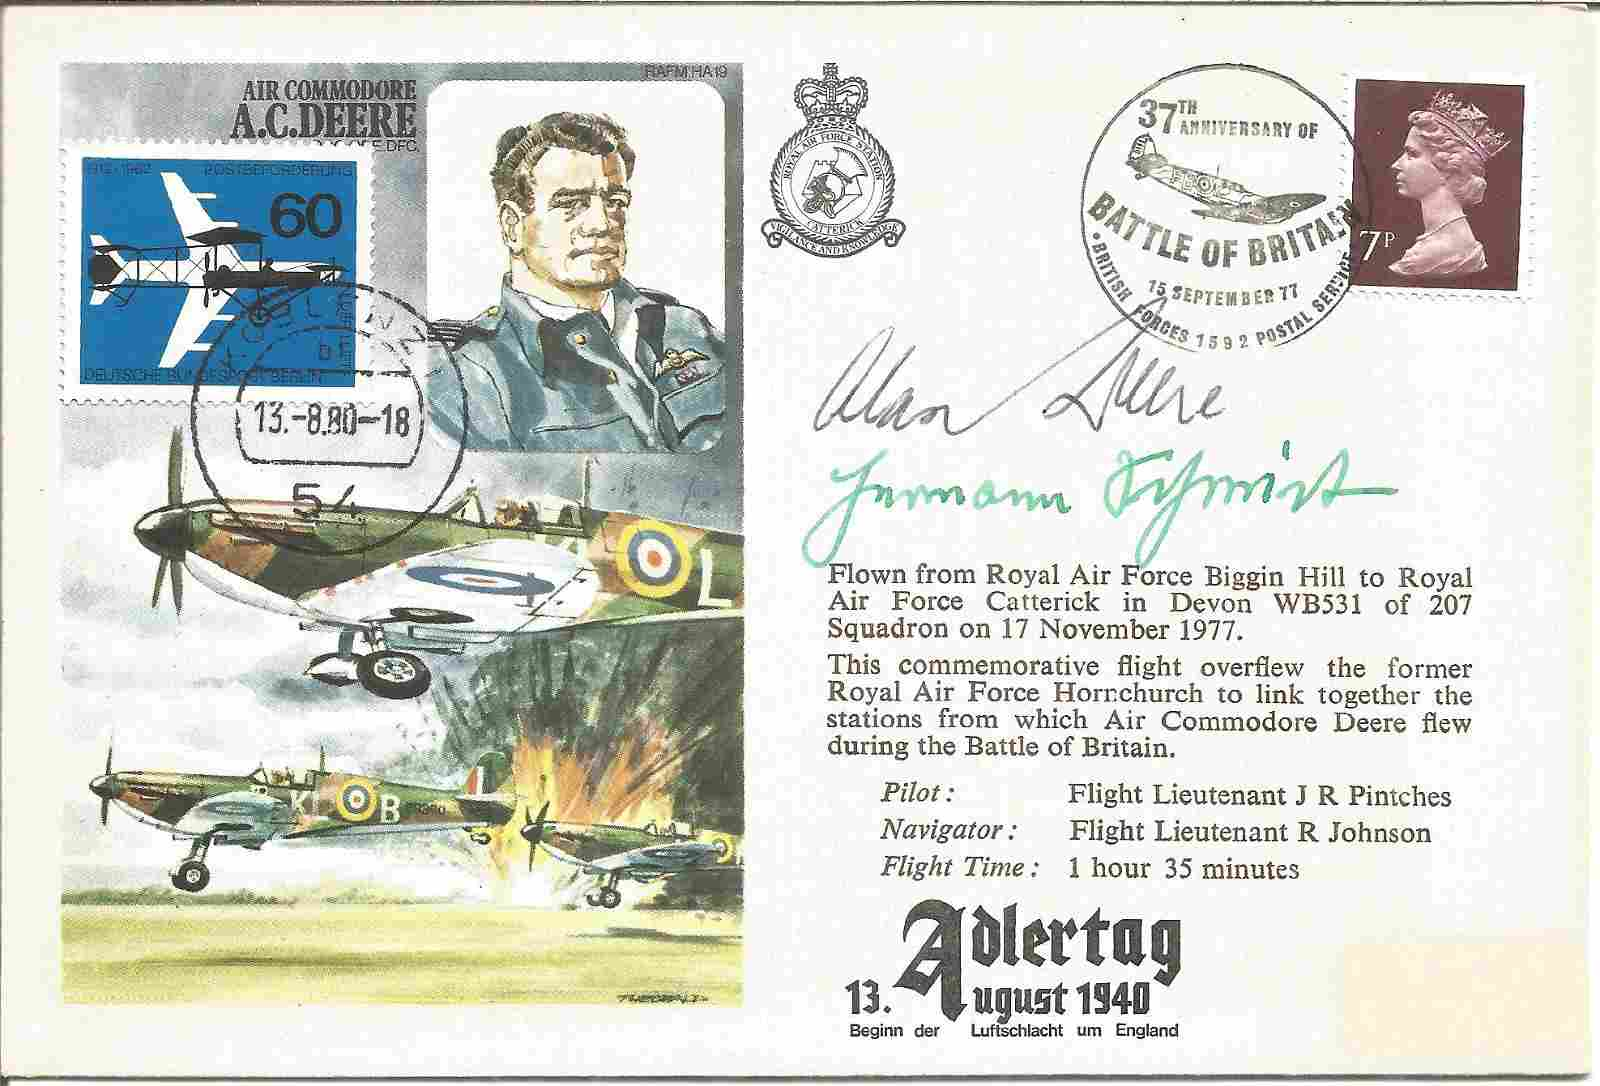 WW2 Fighter aces Alan Deere DSO DFC, Mjr Hermann